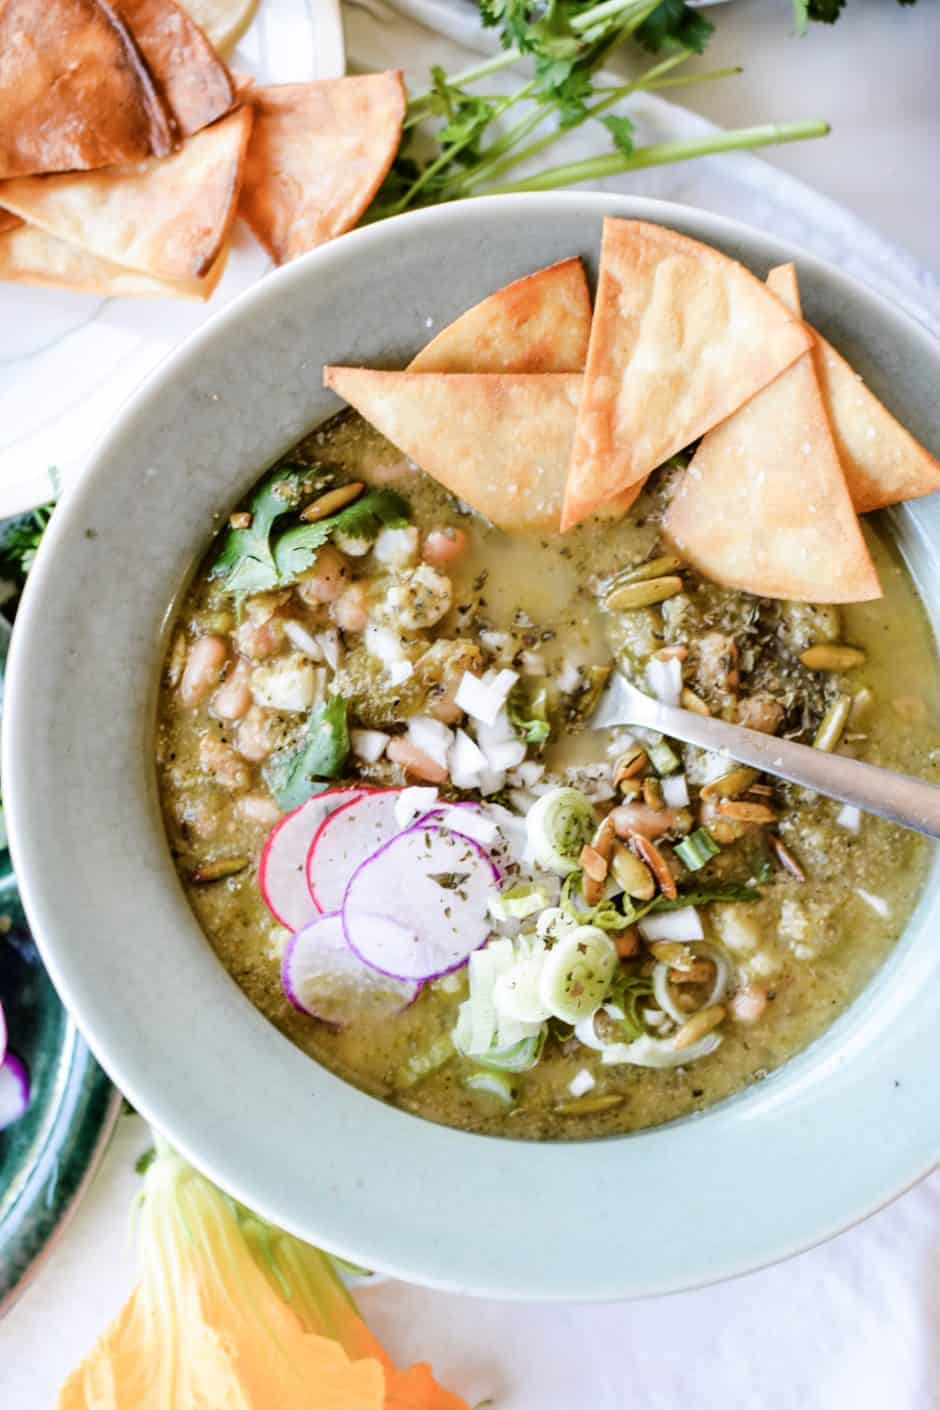 A spicy Pozole Verde that just so happens to be vegan. Made with green chiles, jalapeños, pinto beans and hominy. One of my favorite Mexican dinner ideas! #sponsored #holajalapeno #pozole #vegan